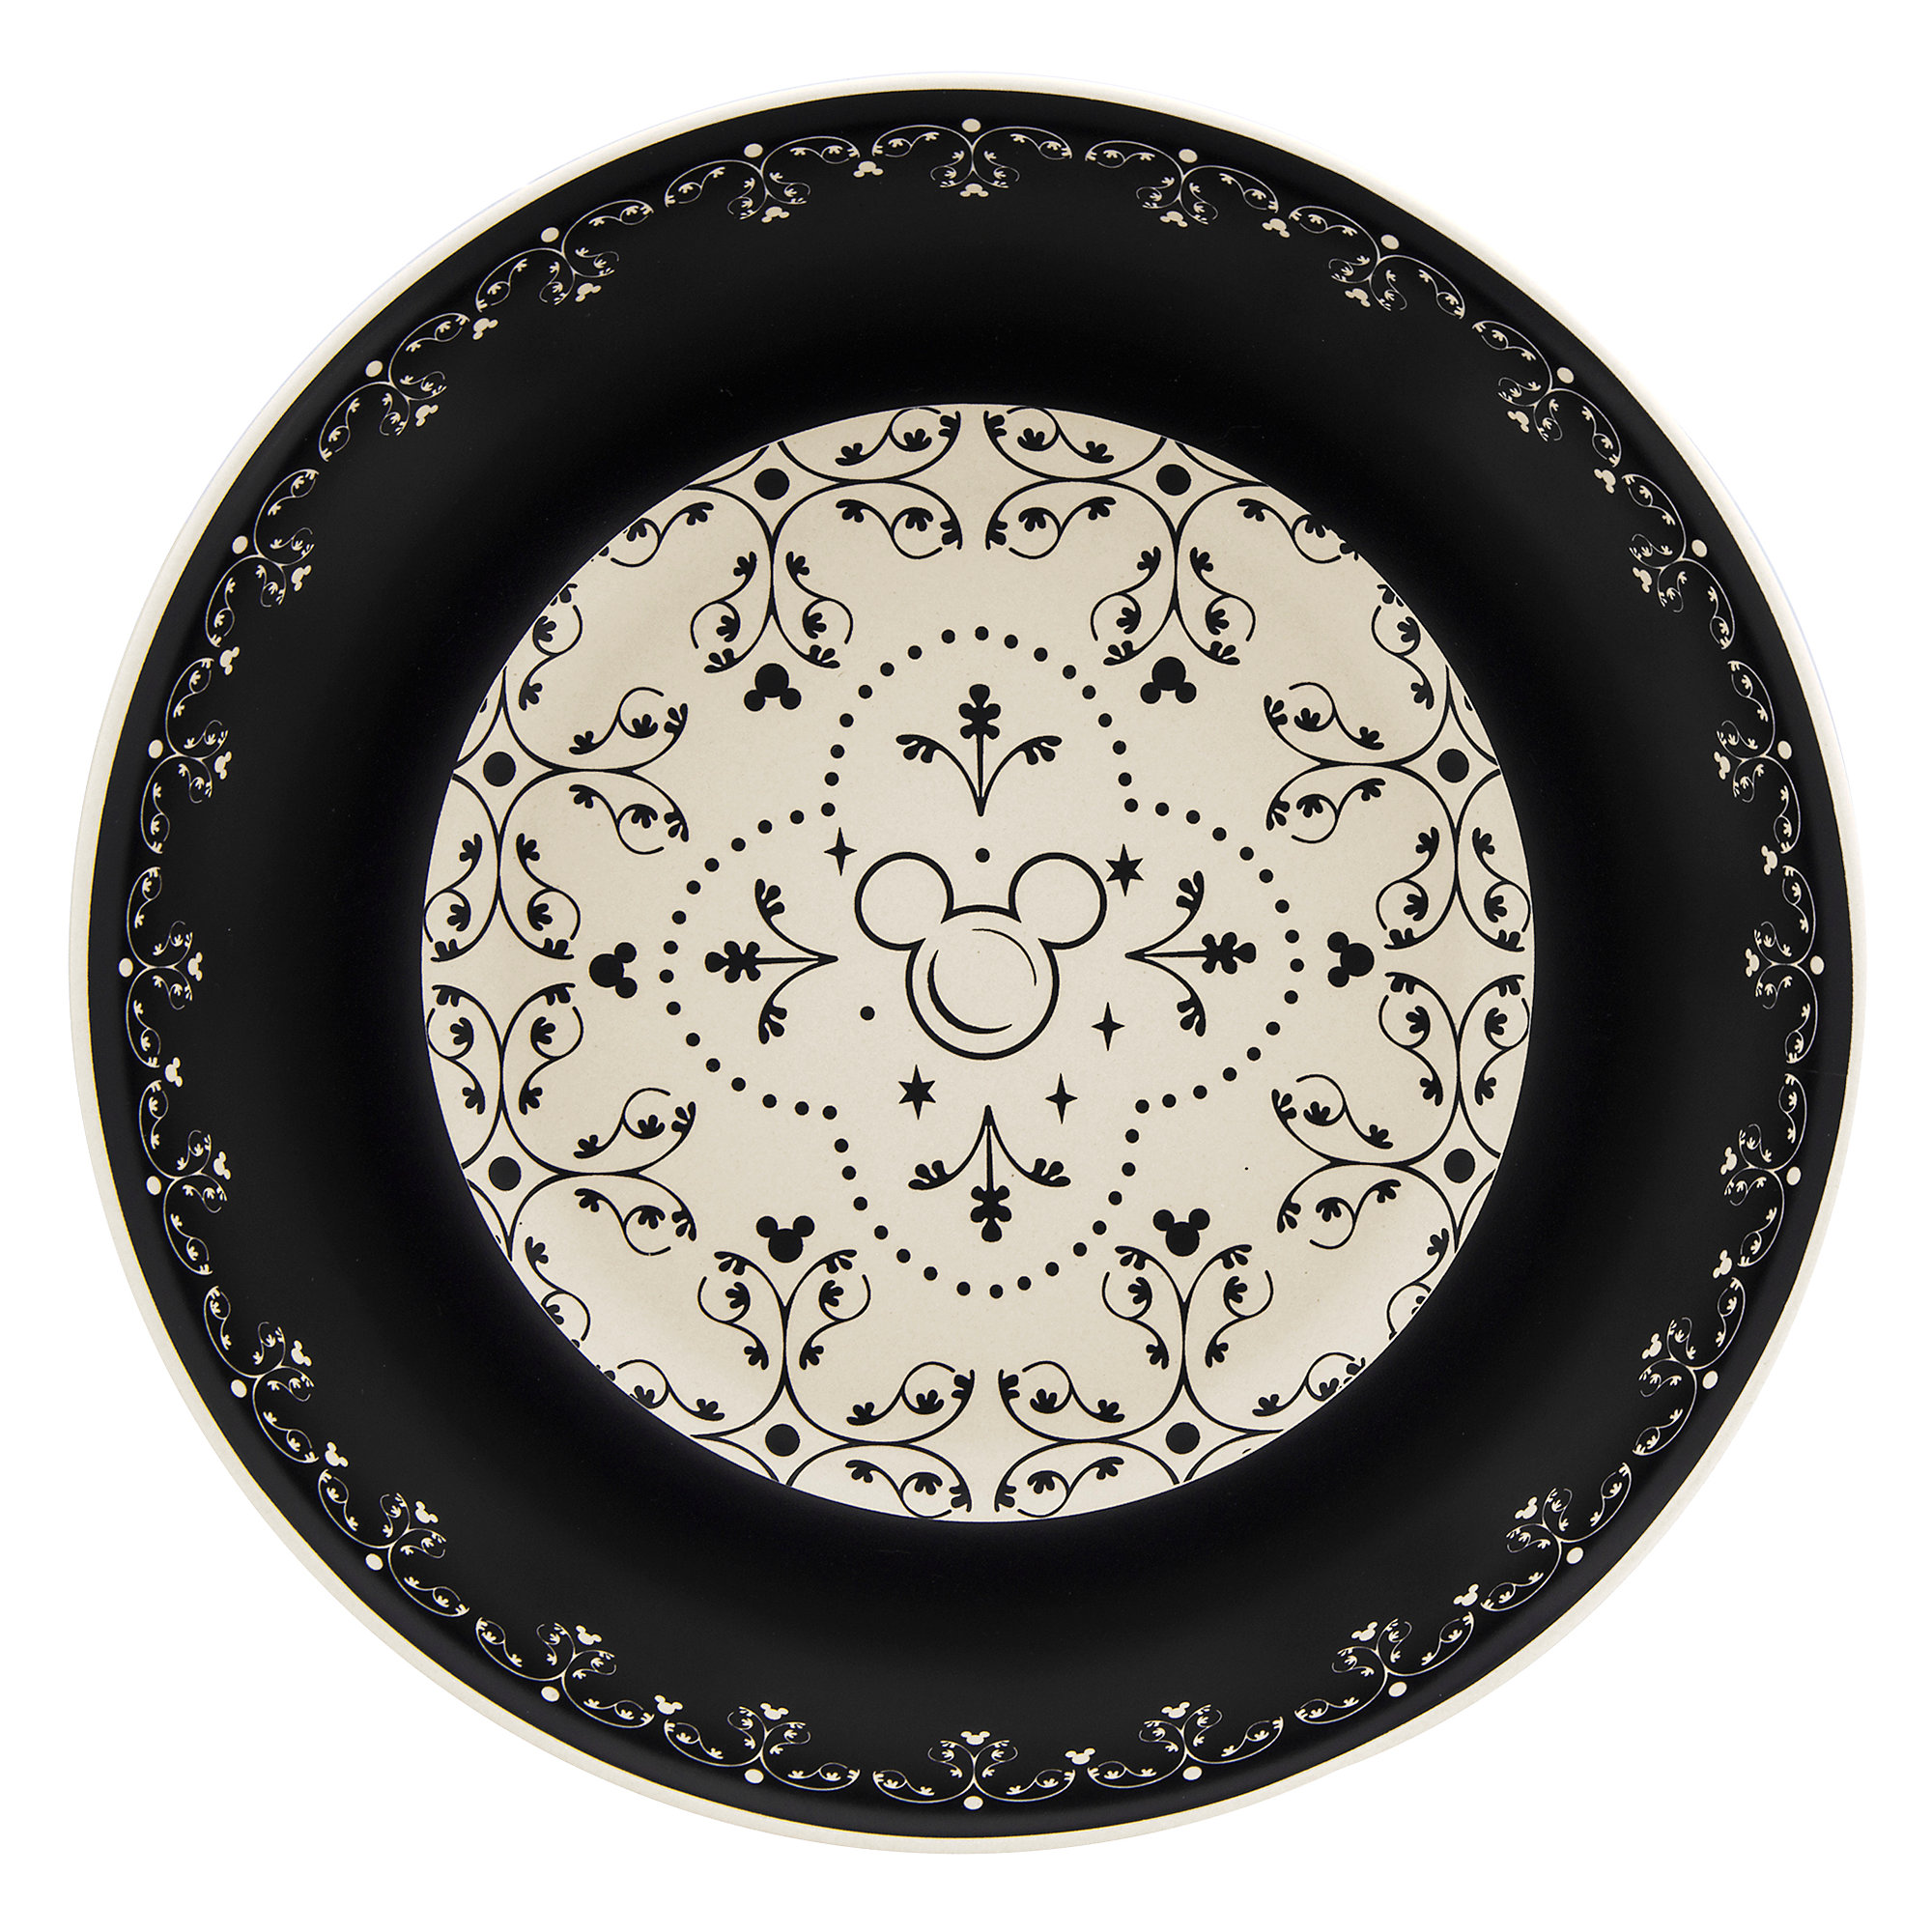 Thumbnail Image of Mickey Mouse Icon Bowl Set - Disney Dining Collection - Black / White  sc 1 st  shopDisney : mickey mouse dinnerware set - pezcame.com